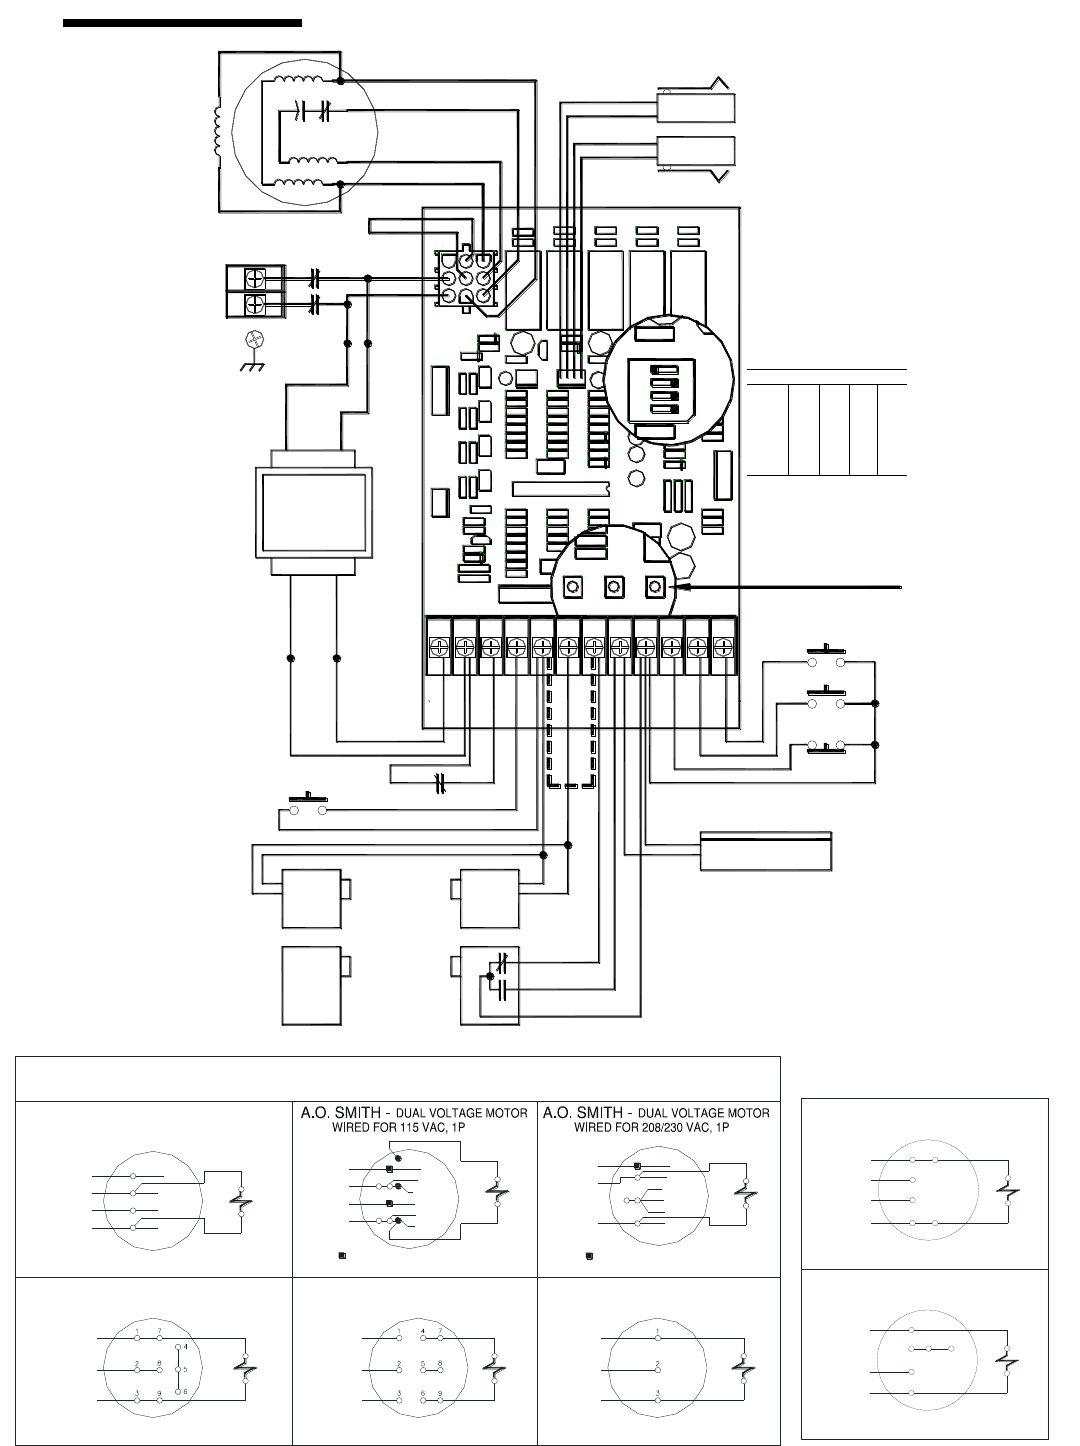 page 22 of linear garage door opener j s user guide wiring diagram schematic single phase 22 575 volts 3 phase single voltage motor